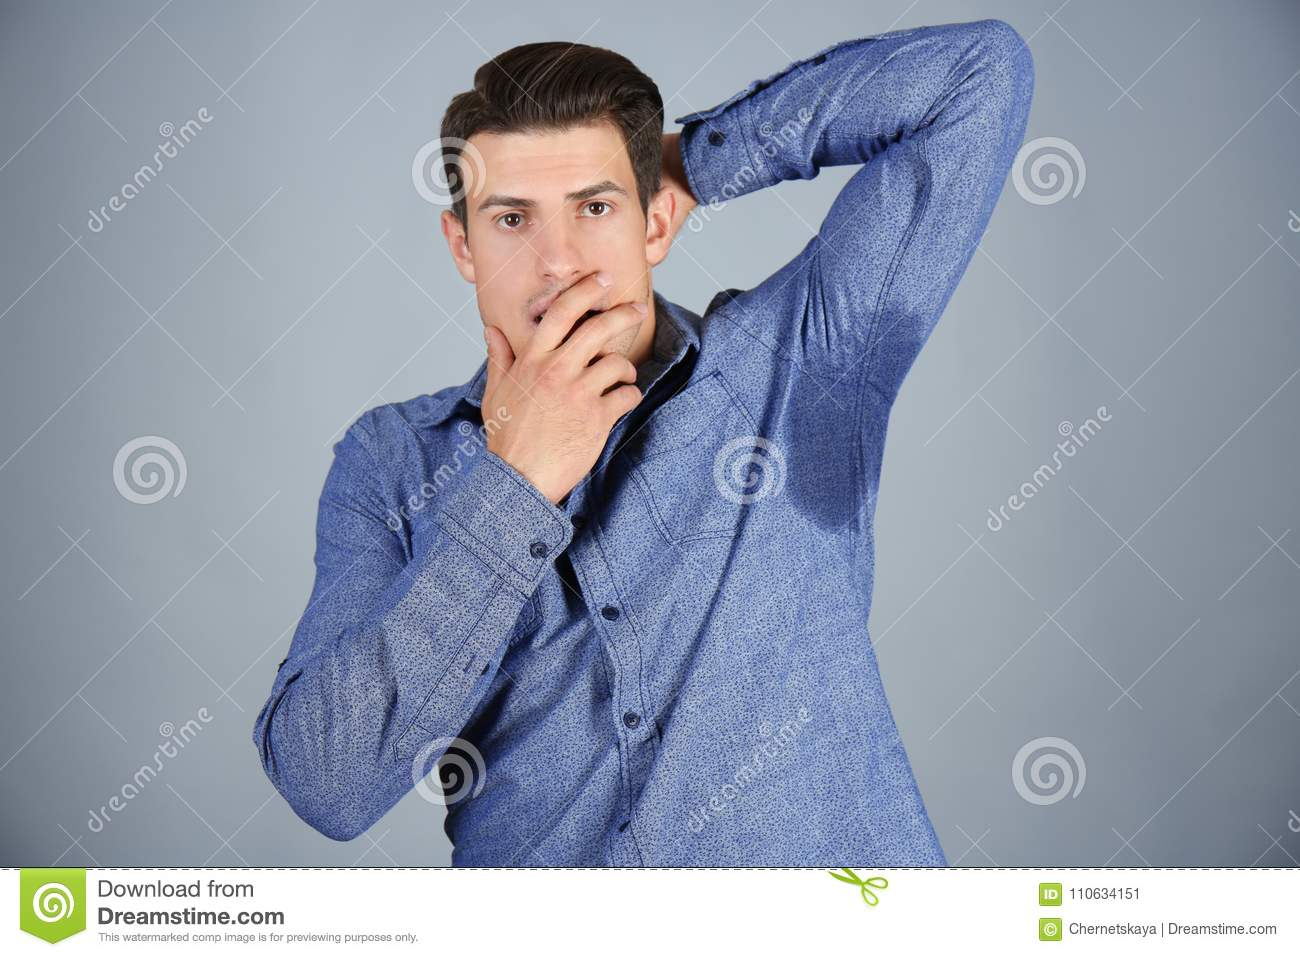 Handsome young man with wet spot on clothes under armpit against grey background.